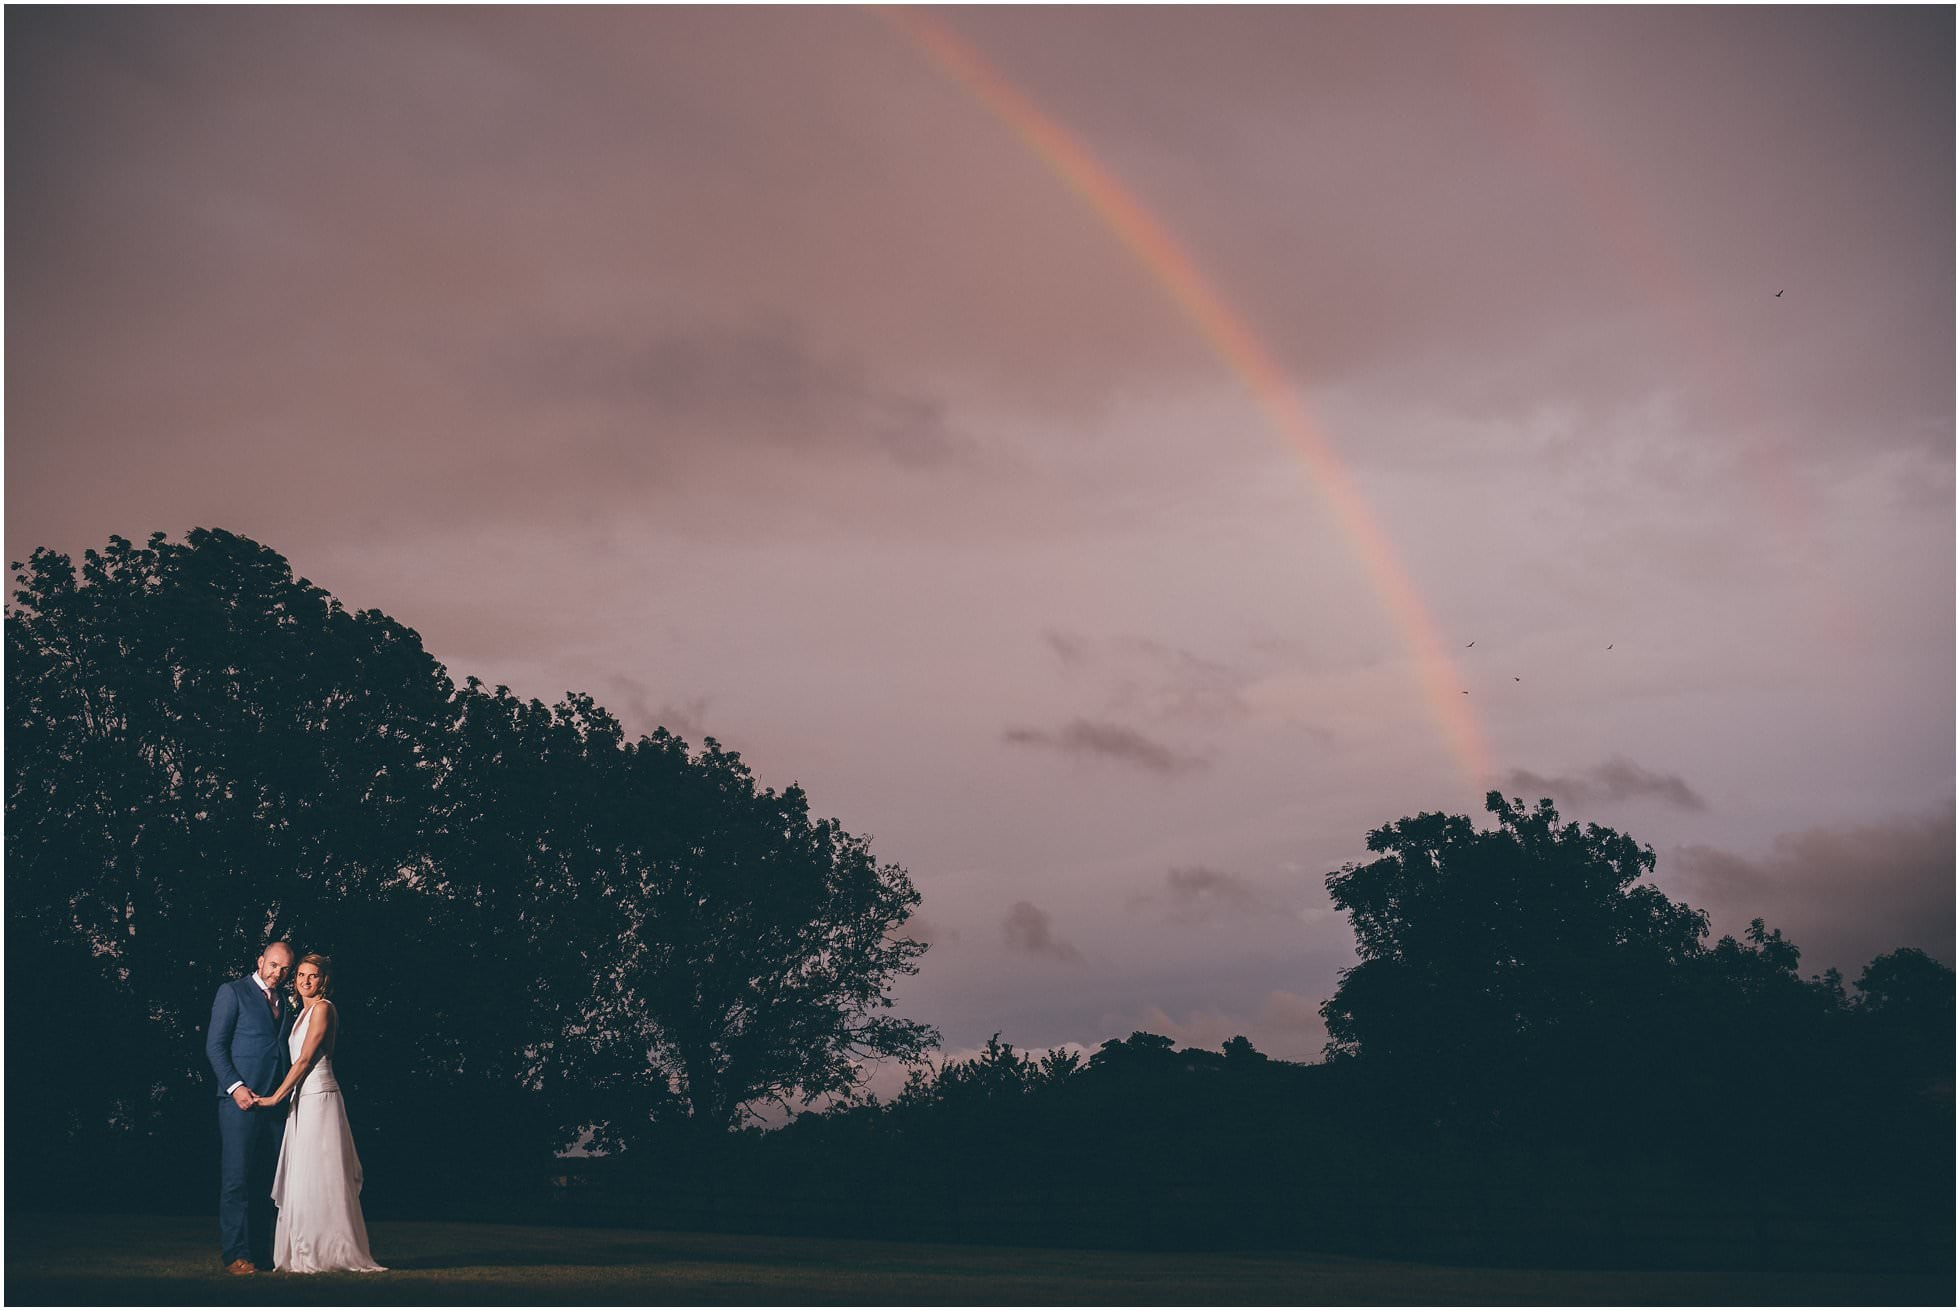 Devon rainbow wedding photograph of the year!